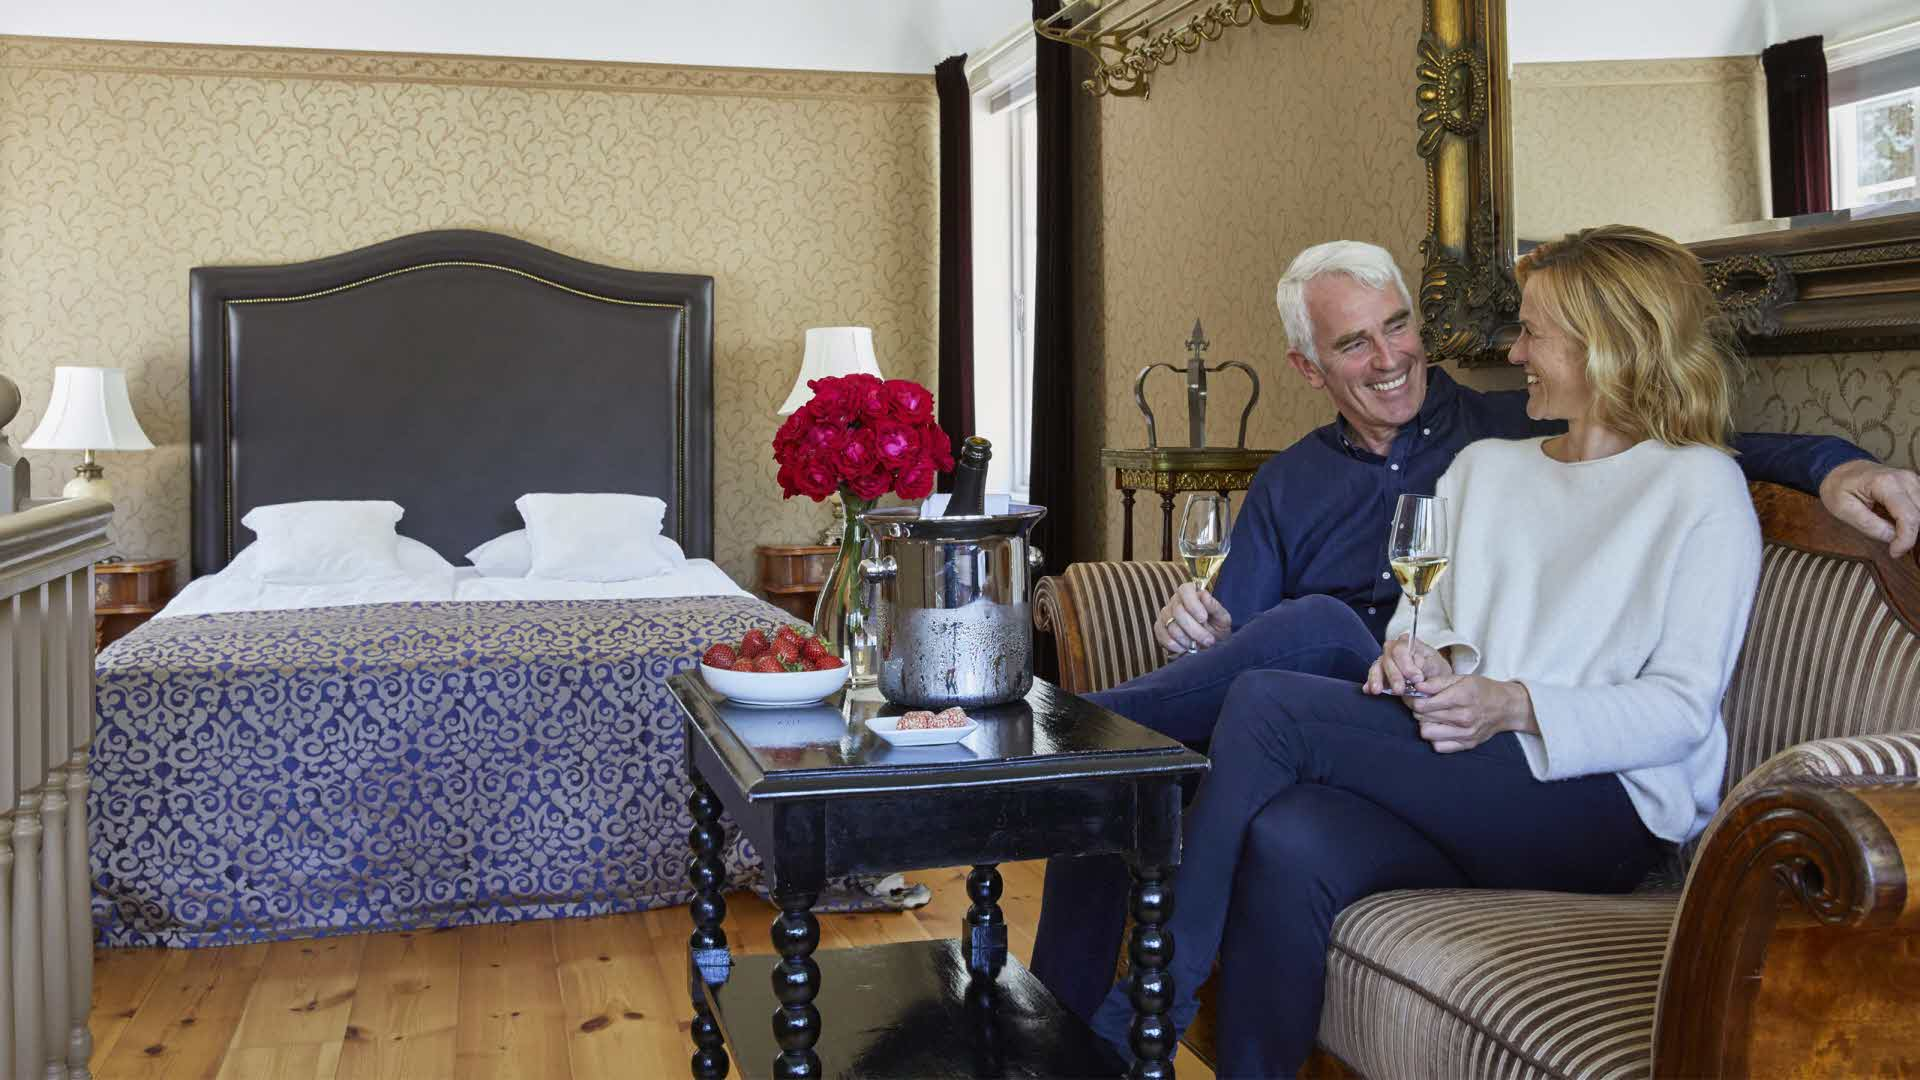 An adult couple relaxing in the historical tower suite's lounge, smiling while holding champagne glasses.